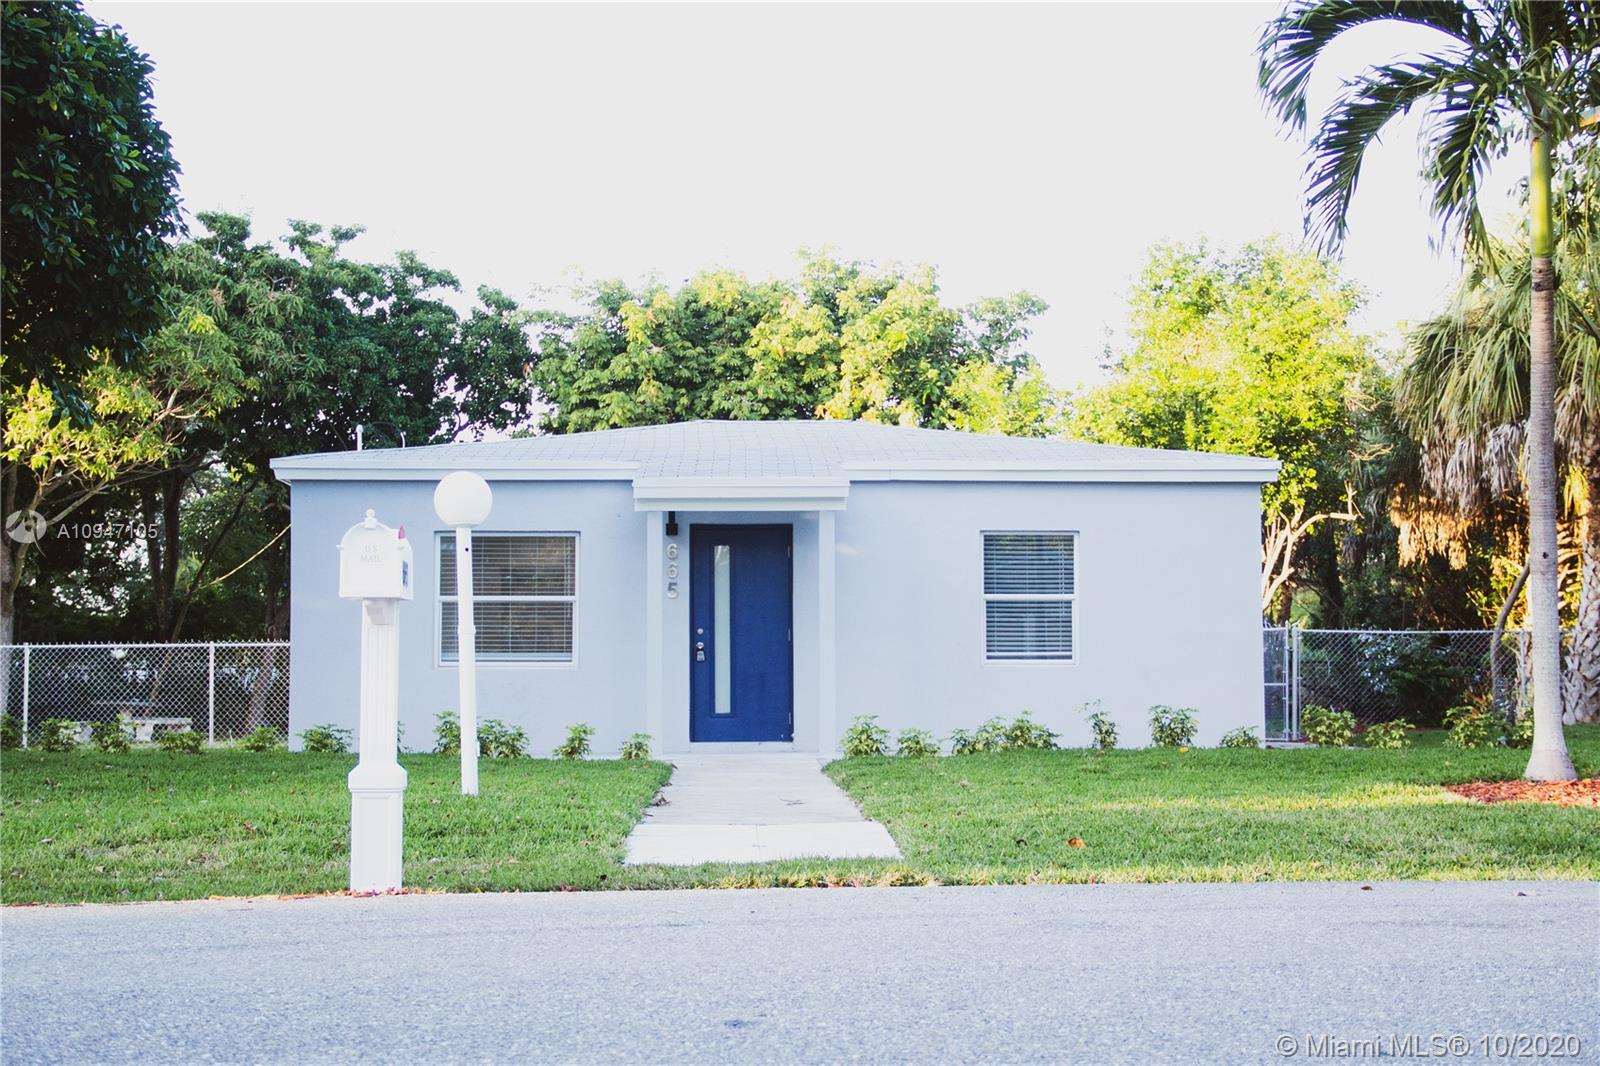 New Turn Key Renovation on a DOUBLE LOT. 1020 Sqft 3/2 Home on a 13,000 foot LOT with a 148 sqft. Efficiency! Space could be used as private office or guest bedroom. 2019 Roof! Electric Upgrade! Brand new kitchen featuring quartz countertops, large custom pantry cabinets, custom backsplash / hardware, and NEW S/S appliances! Tankless hot water heater! Modern Walk-in Closet with Barn door! New 36x48 Tiles throughout! LED recessed lighting throughout! New plumbing and drain pipes! Breathtaking landscaping w/ SOD! Freshly painted inside & out! Bring your imagination to the BIGGEST LOT in Oakland Park today! HURRY THIS PROPERTY WONT LAST!